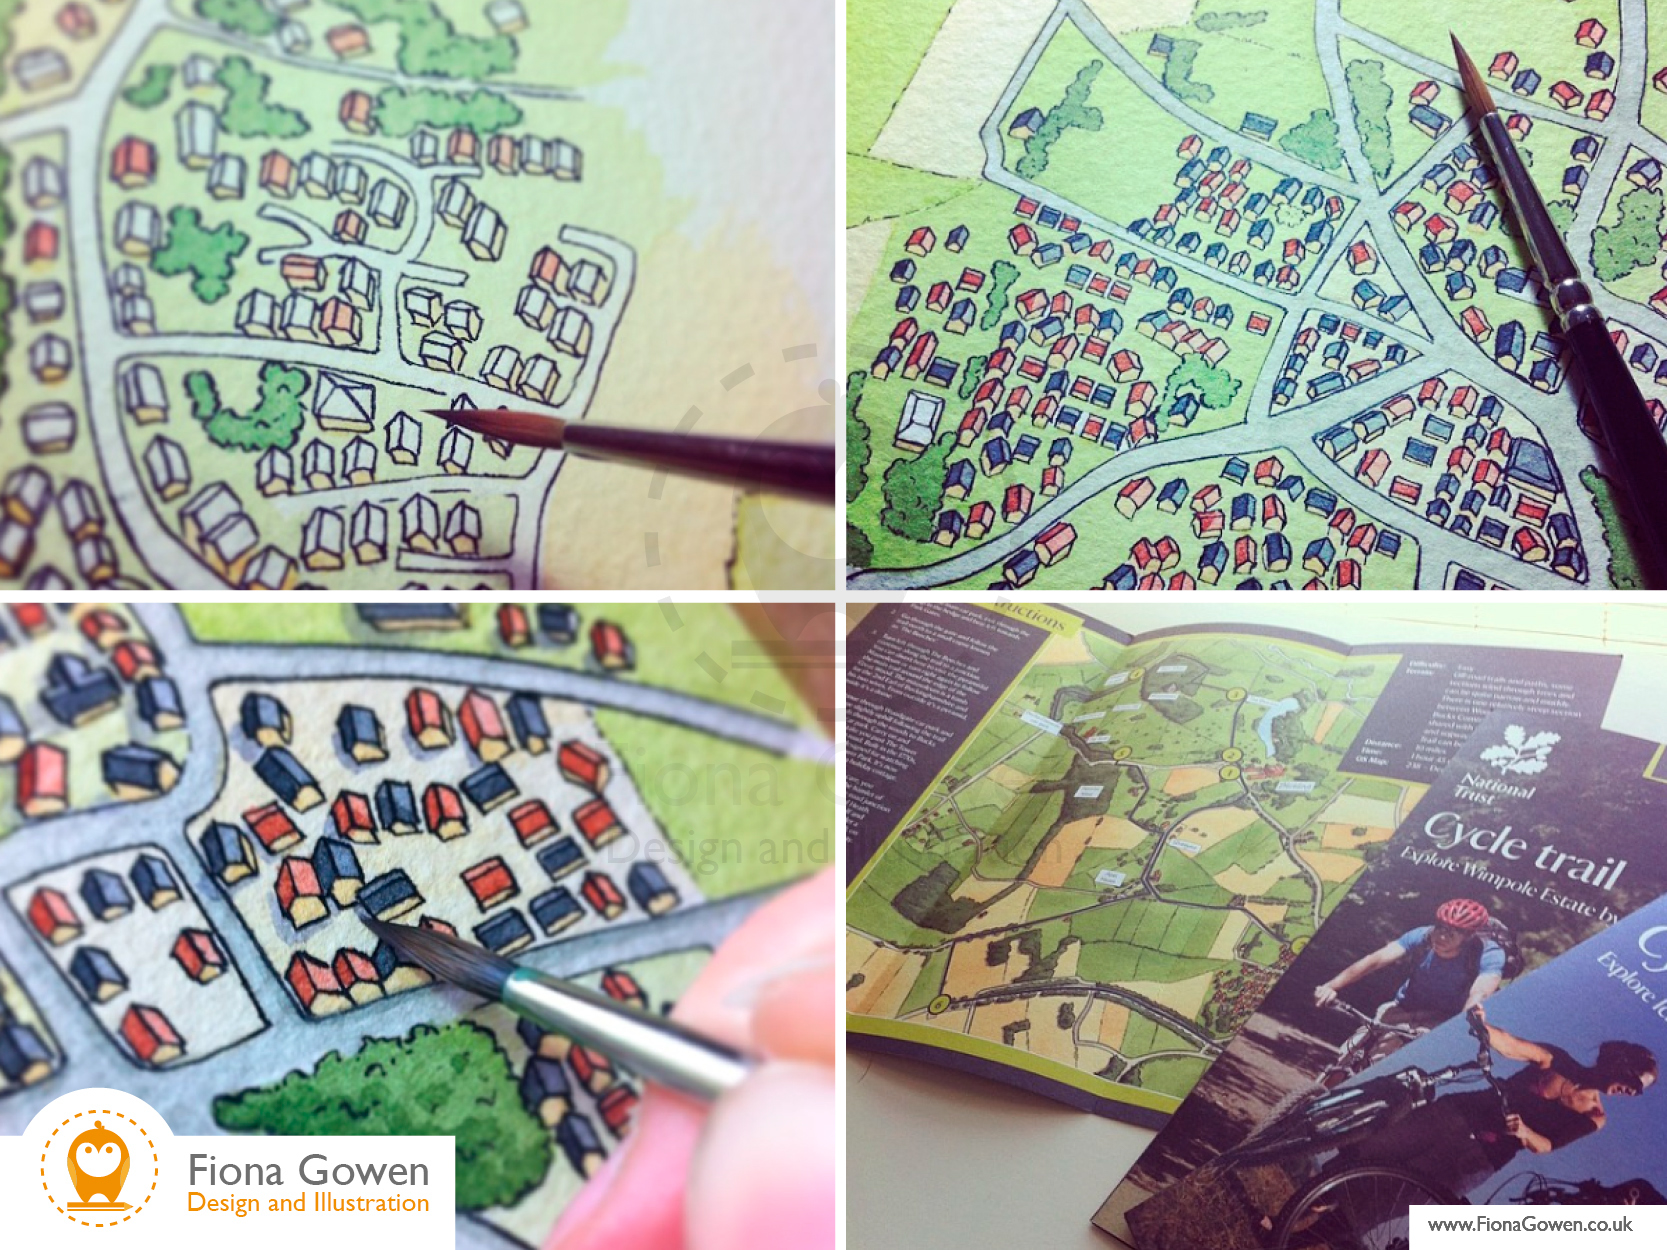 Work in progress photos of Fiona Gowen painting illustrated maps of Blickling using watercolours